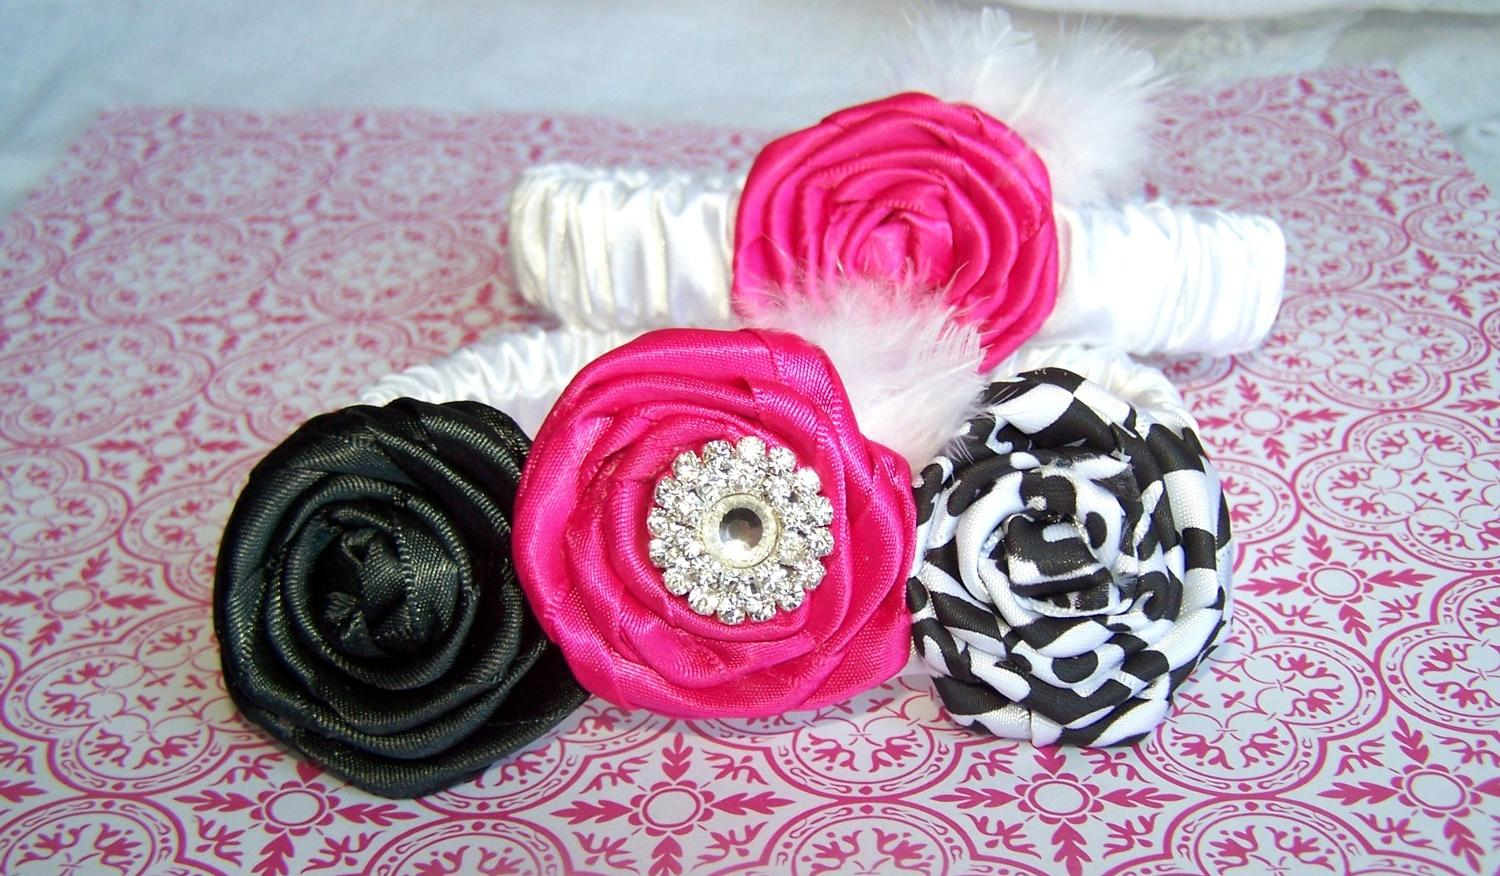 WEDDING GARTER SET - Black and